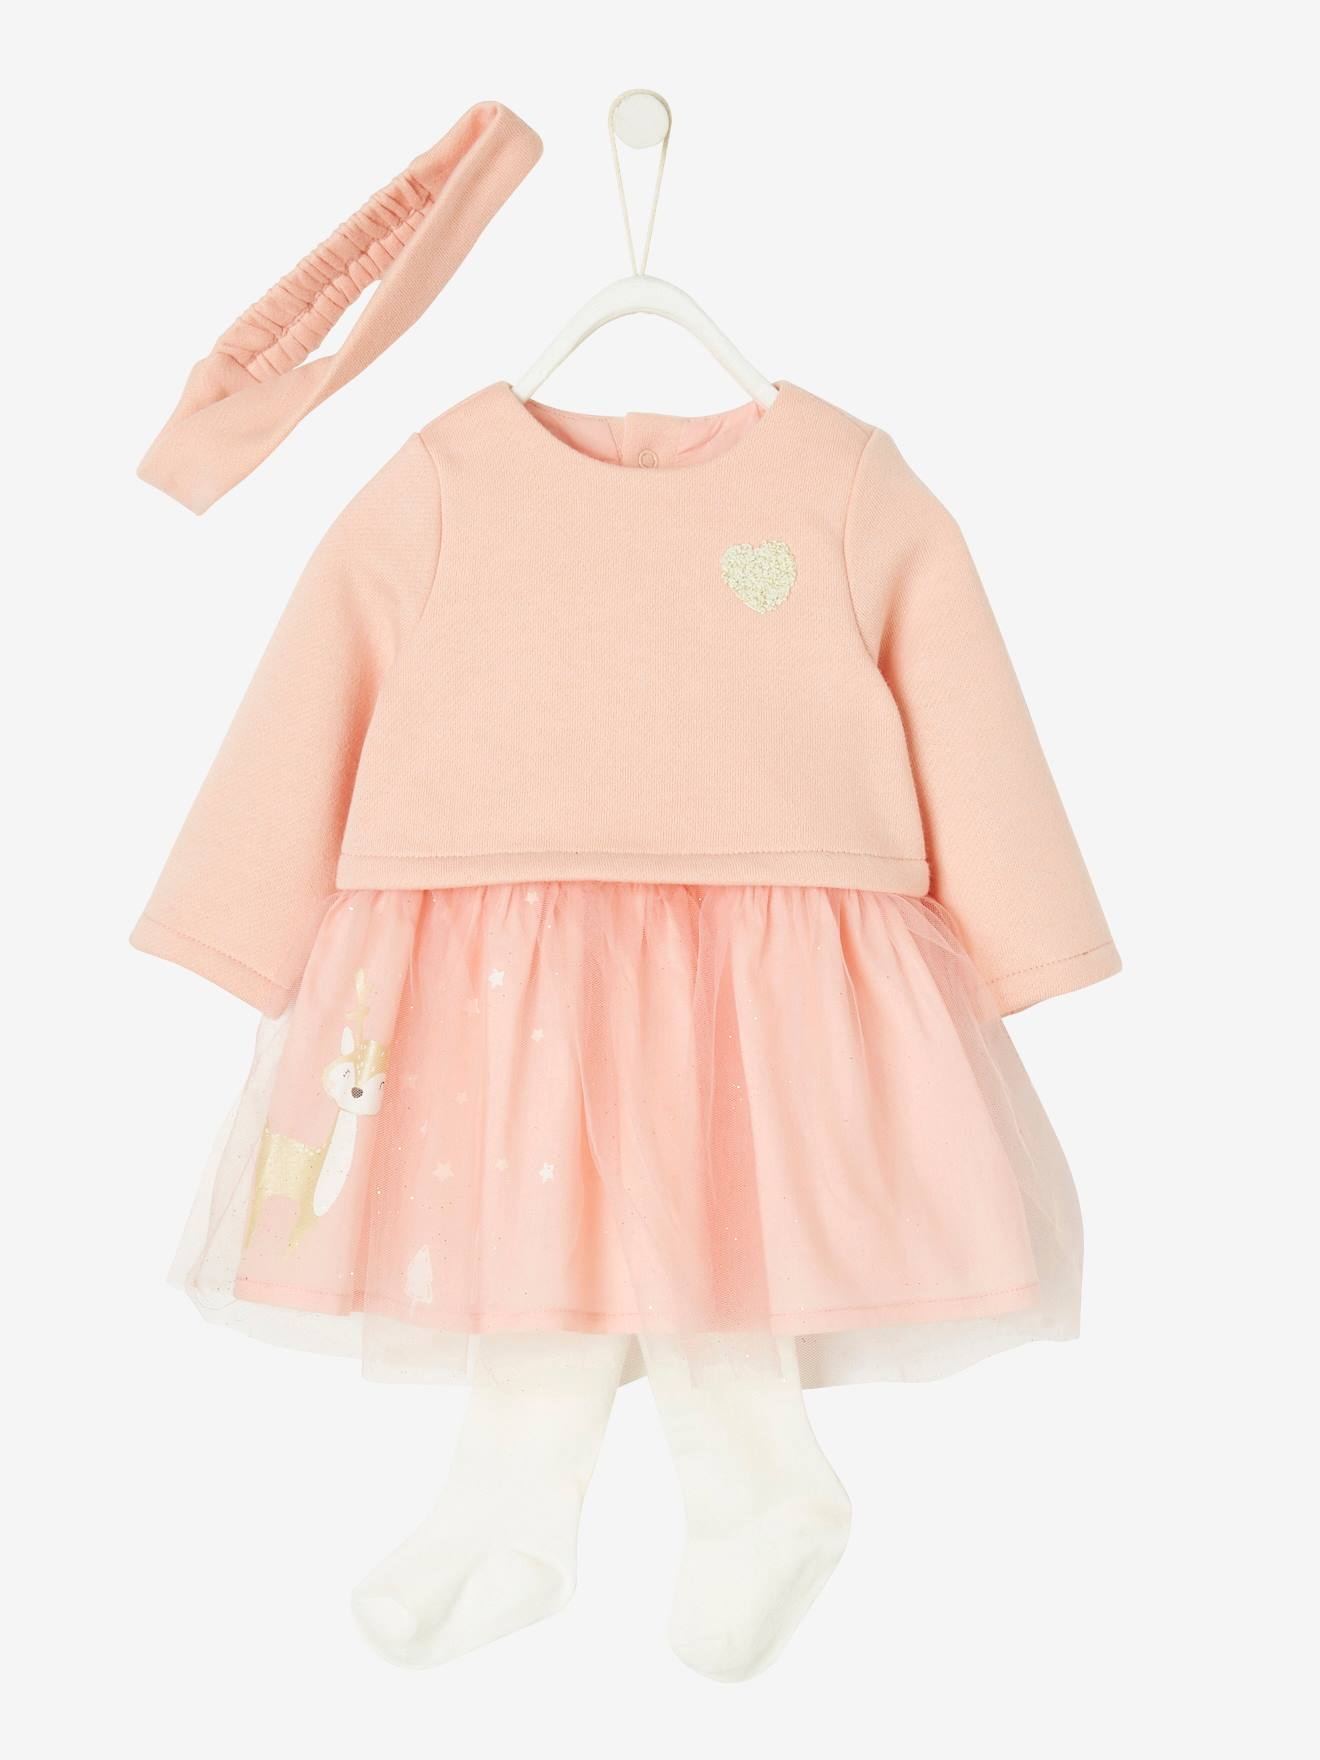 Ensemble de fêtes bébé fille robe + bandeau + collant rose , Vertbaudet